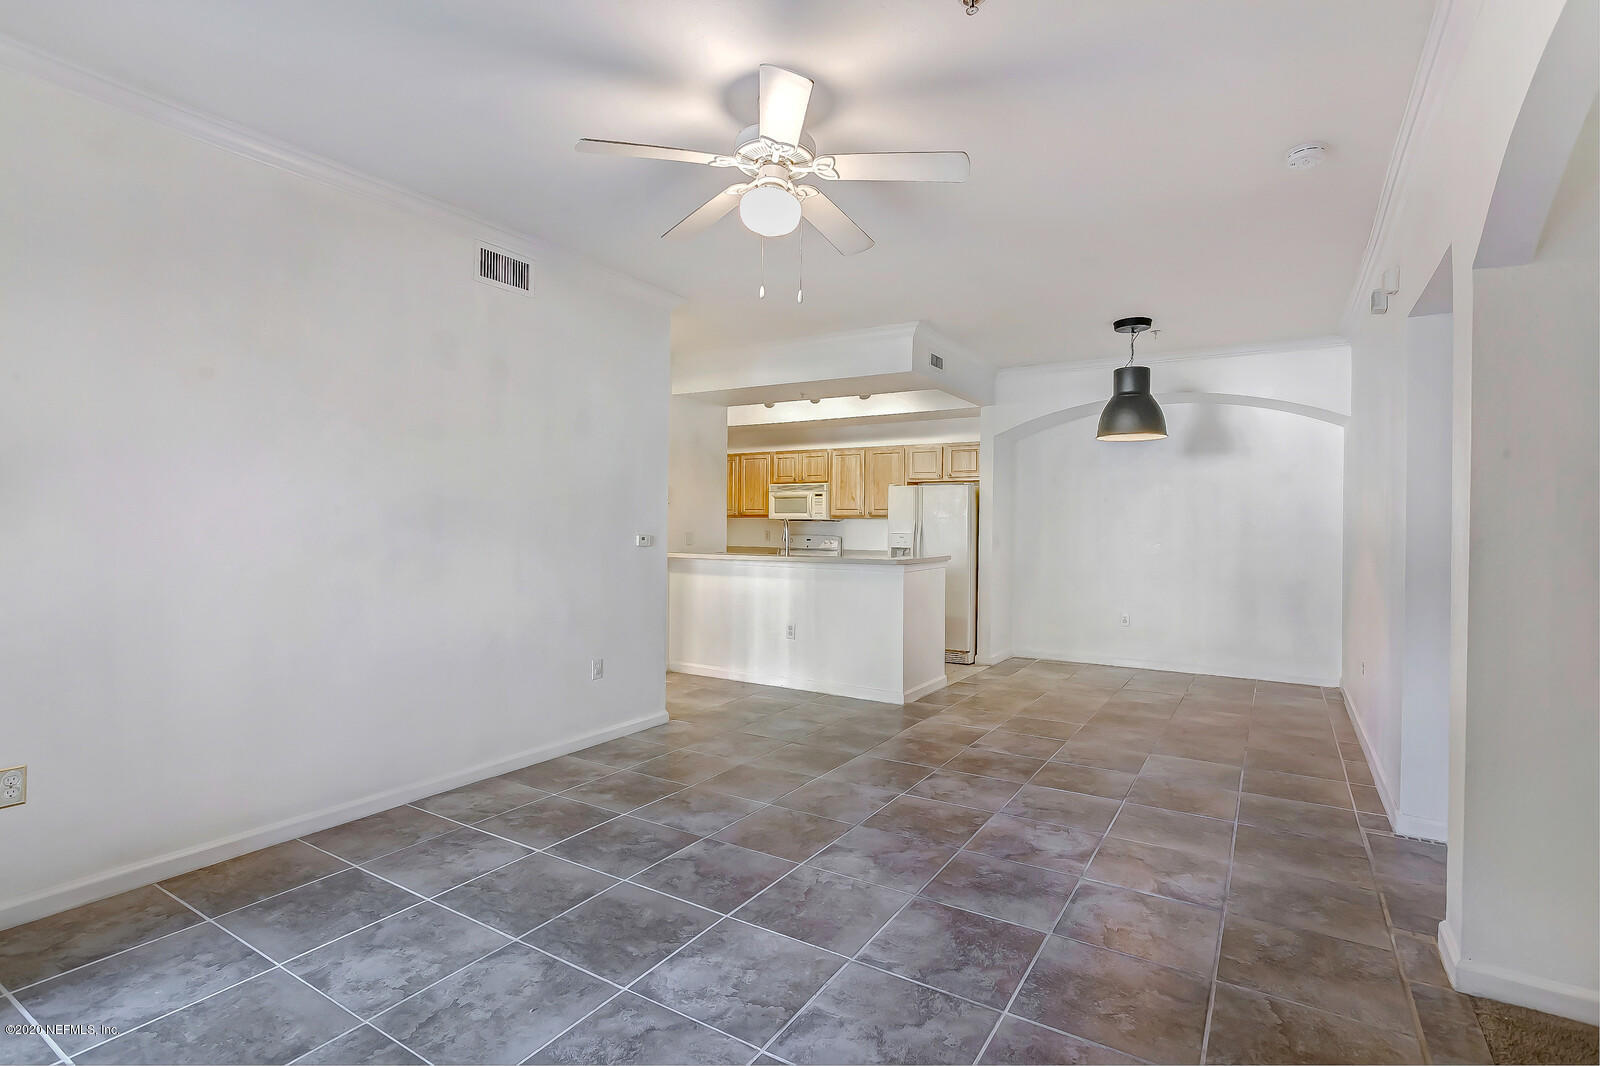 10075 GATE, JACKSONVILLE, FLORIDA 32246, 2 Bedrooms Bedrooms, ,2 BathroomsBathrooms,Residential,For sale,GATE,1082645